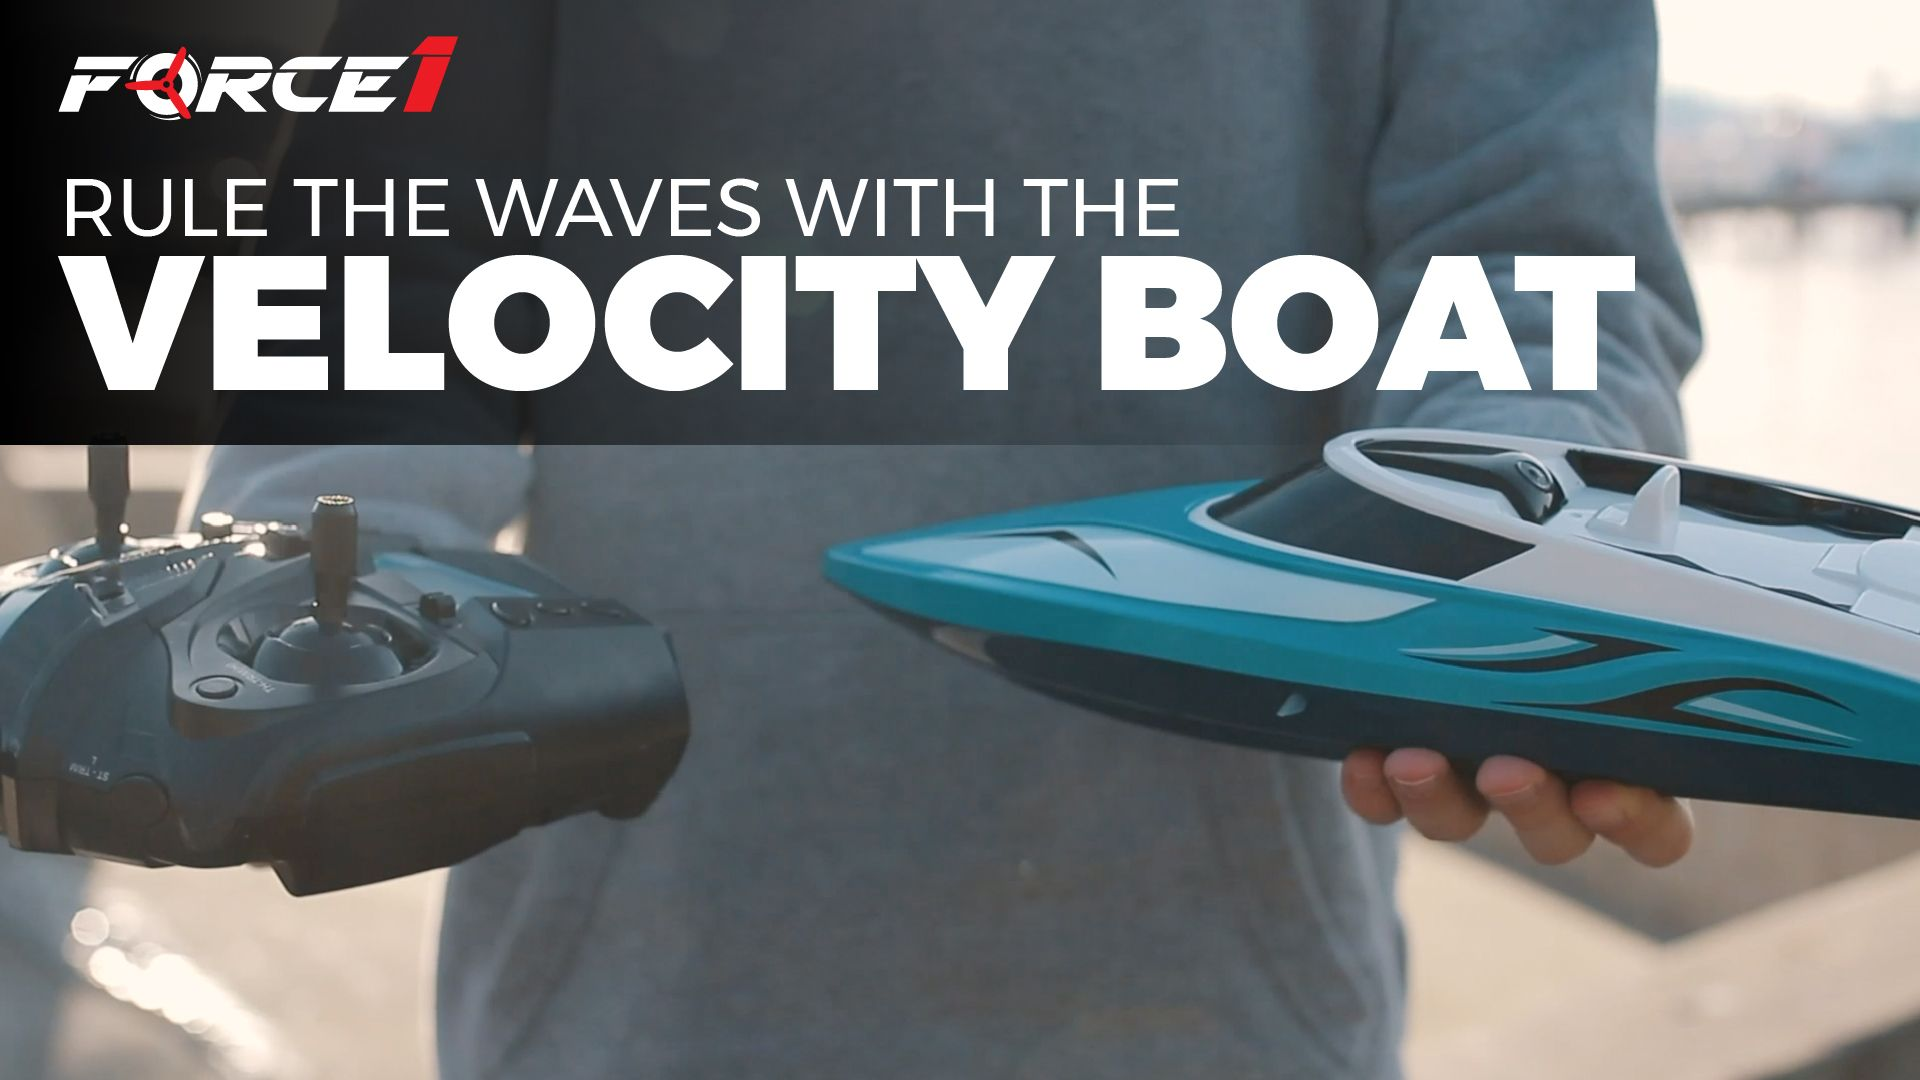 FORCE1 Experience the Velocity Boat (With